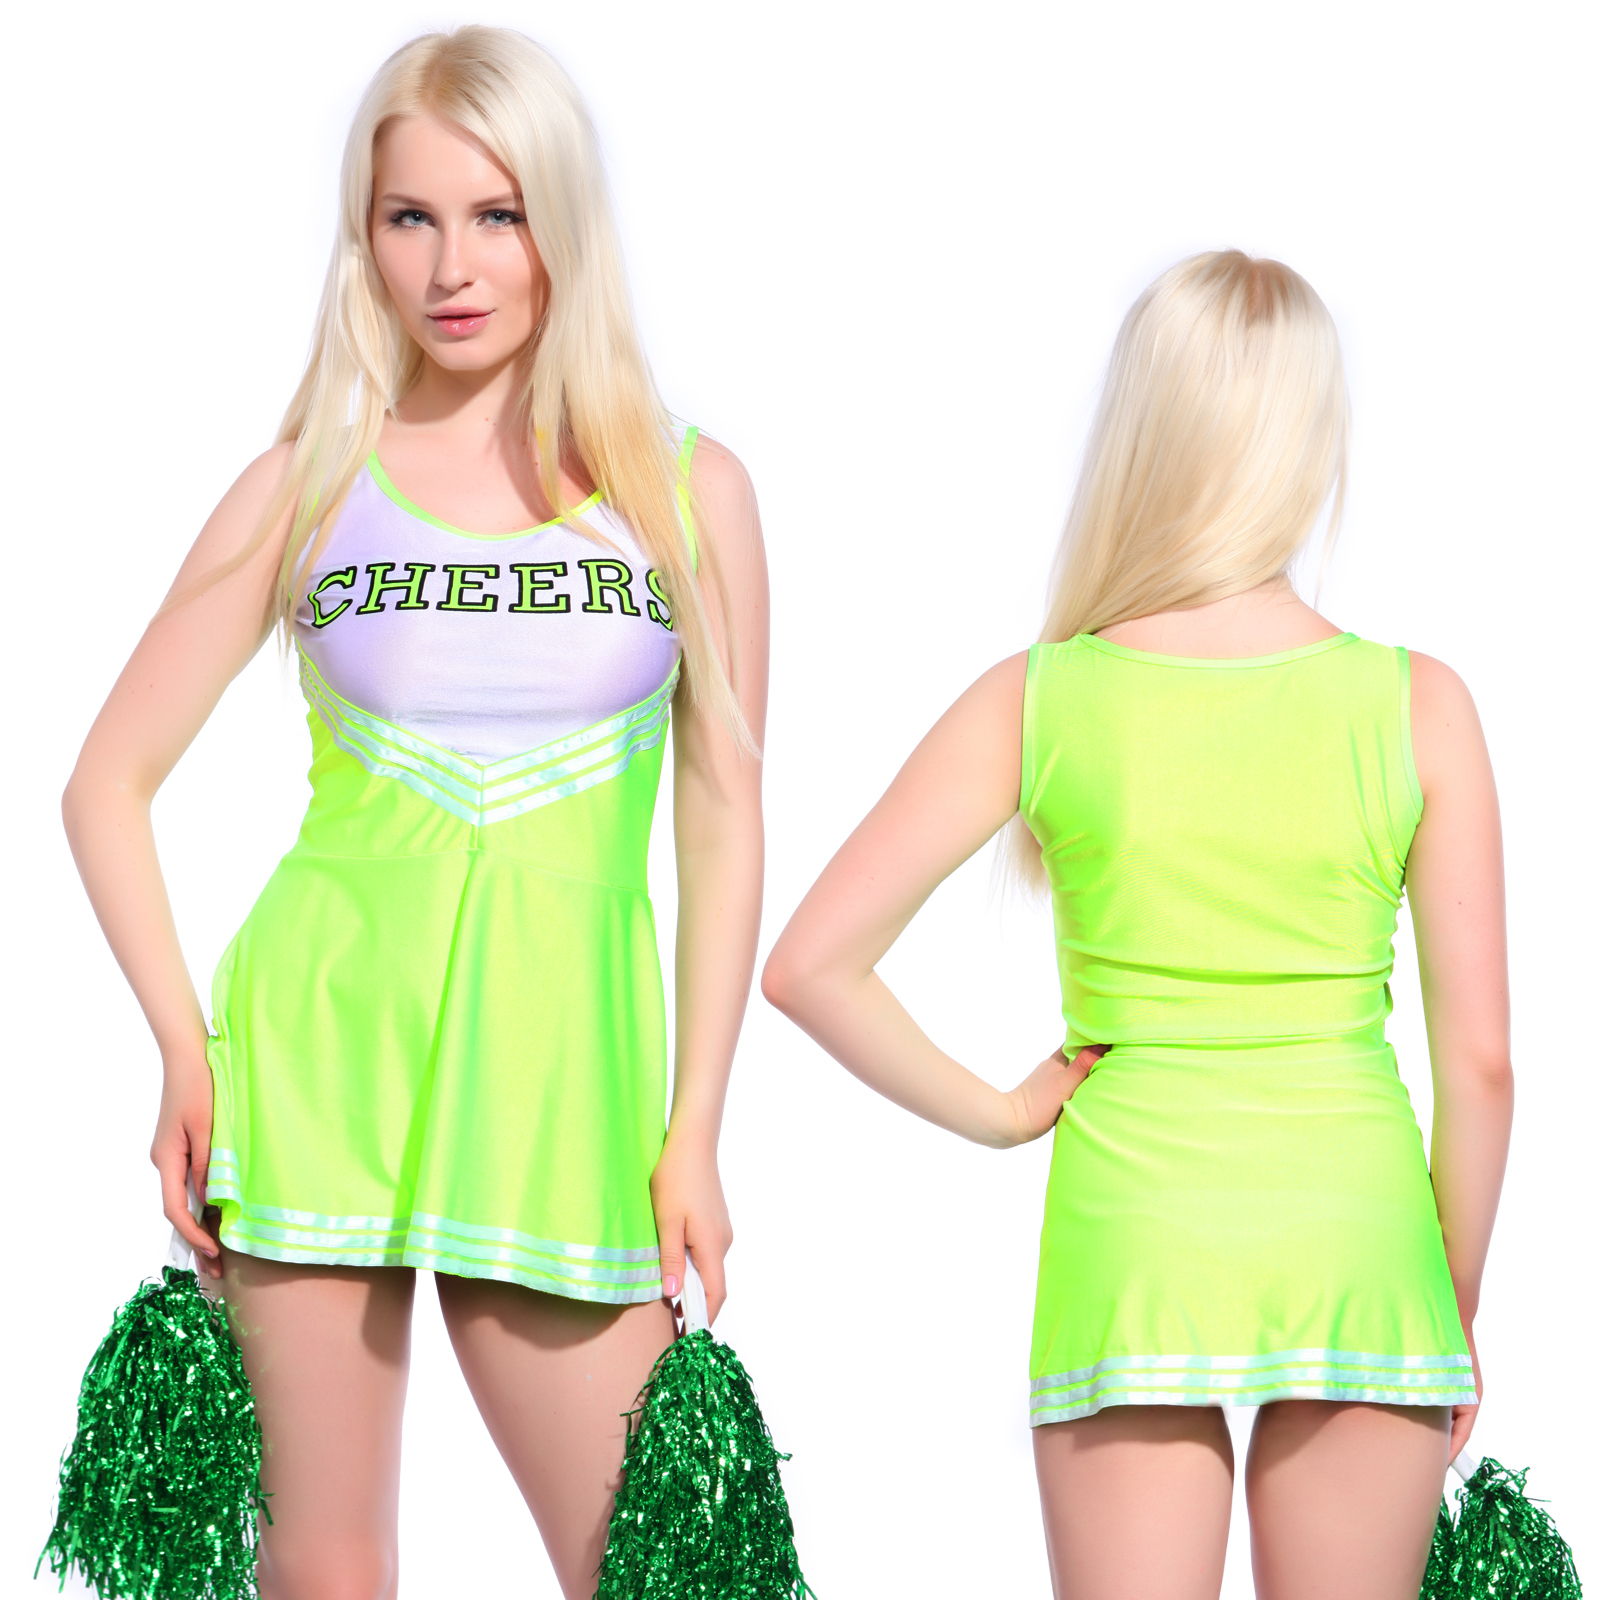 Sexy High School Cheerleader Costume Cheer Girls Uniform Party Outfit W Pompoms Ebay